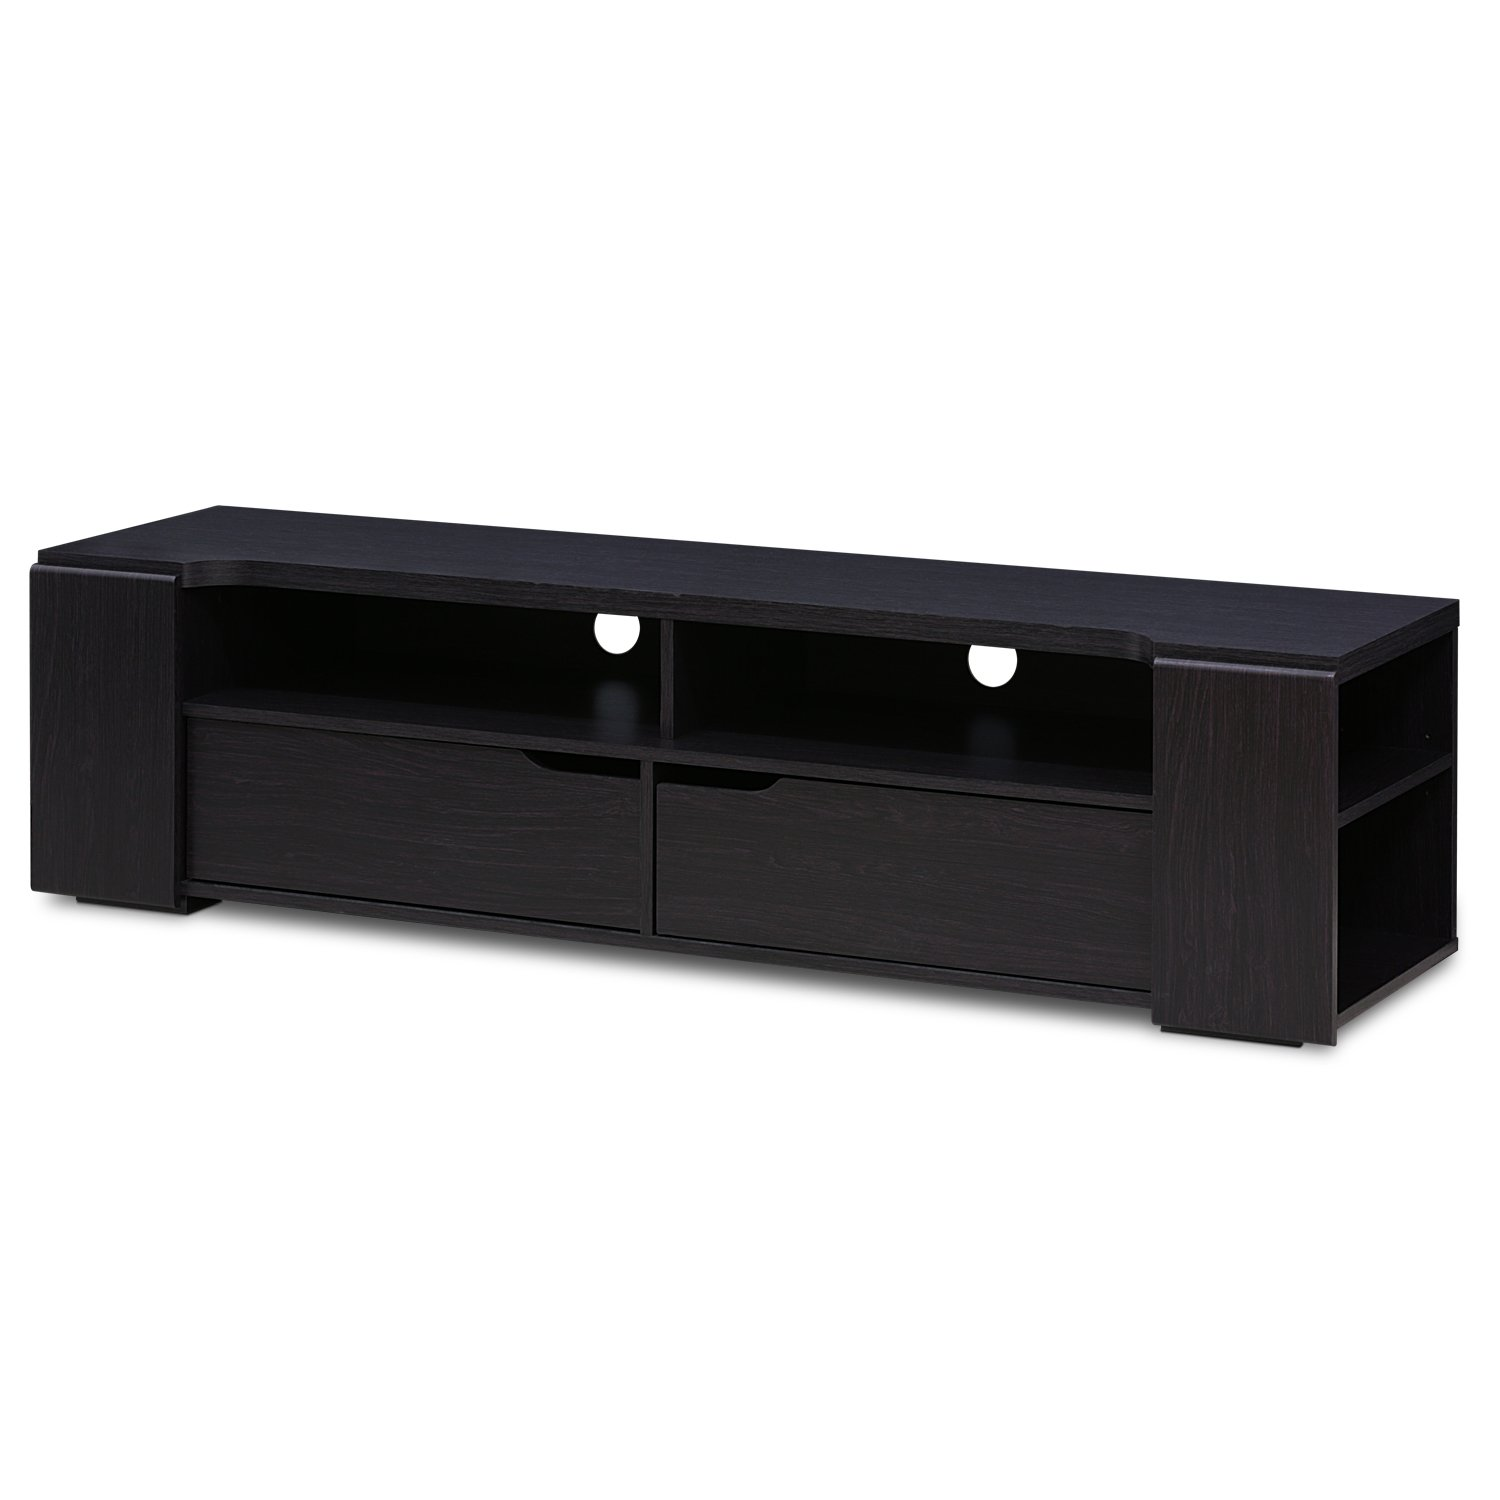 FURINNO FVR7278WG Indo Entertainment Center for TV up to 65 Inch with 2 Drawers, Wenge